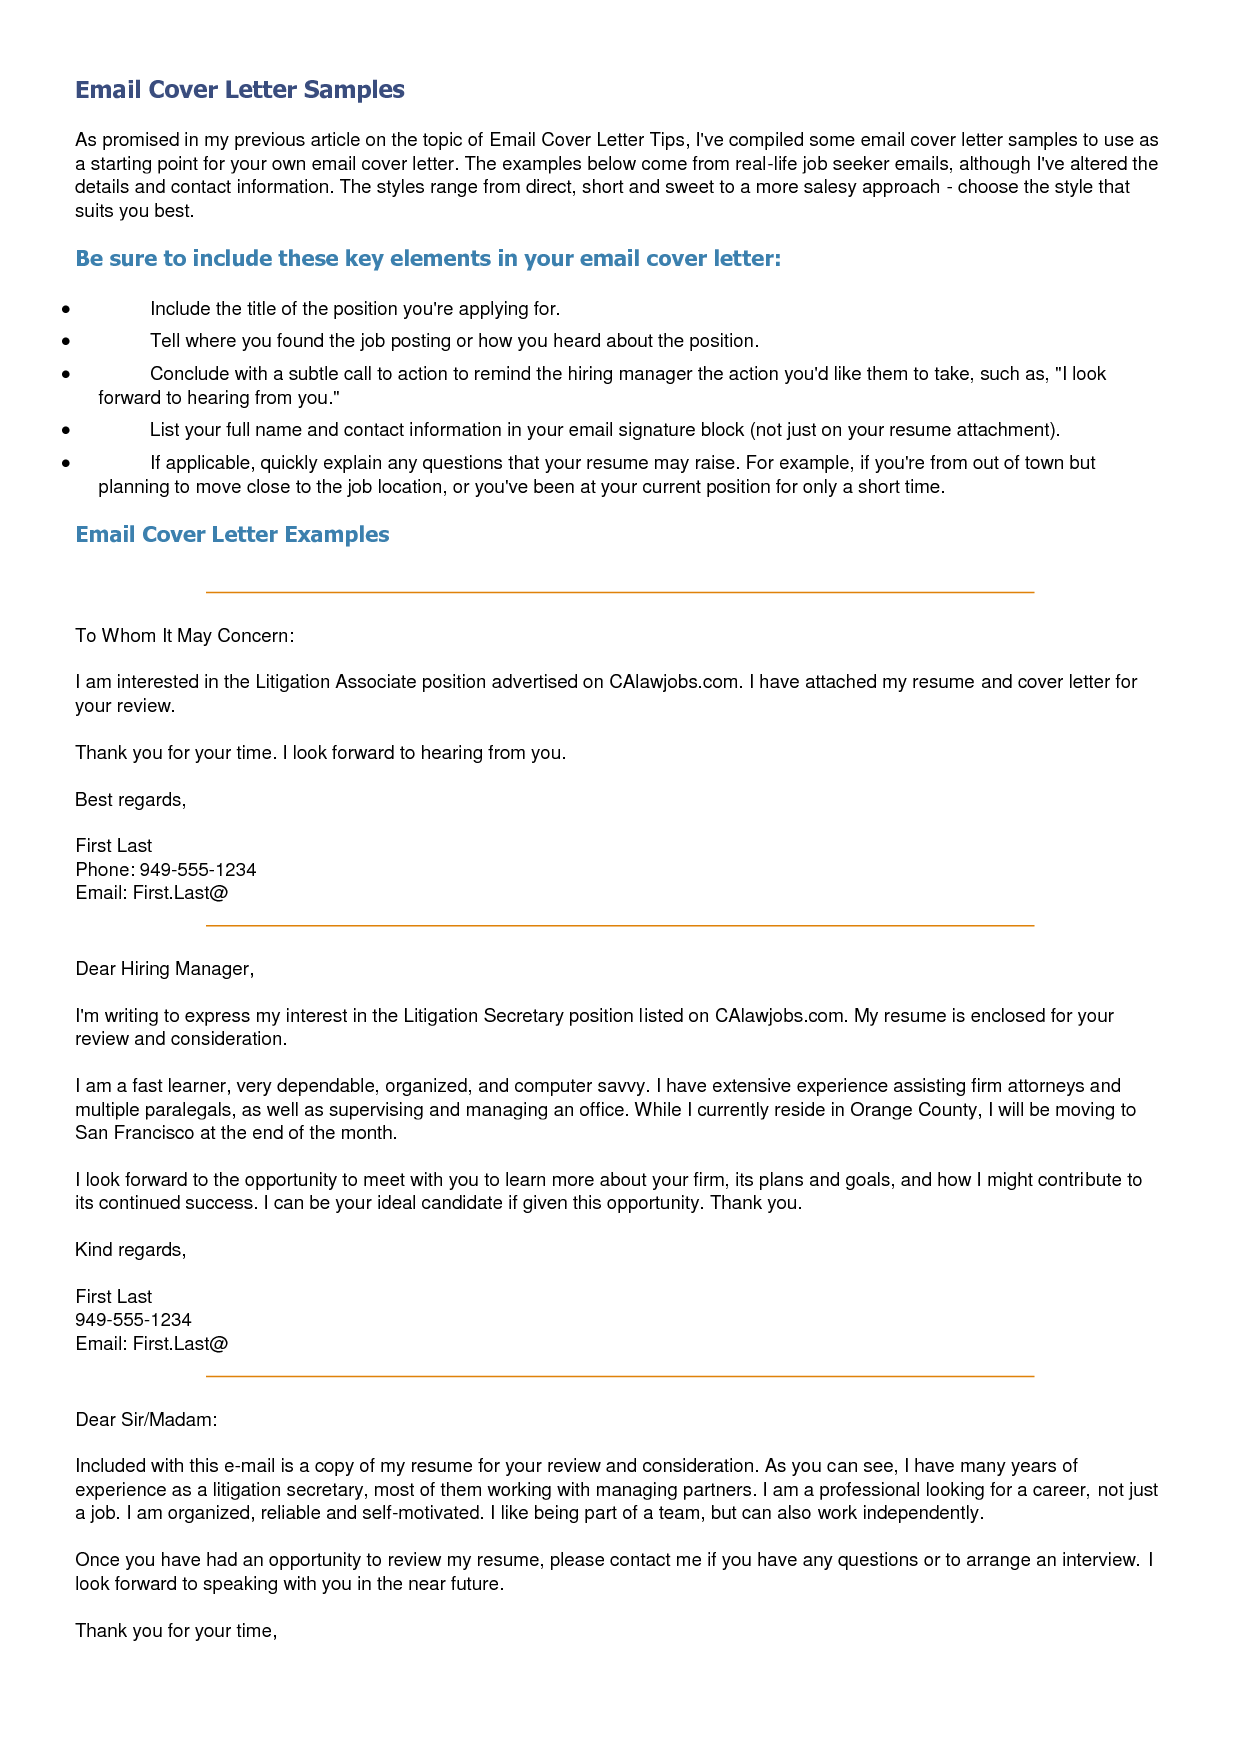 email cover letter sample email cover letter samples - Email Cover Letter Example